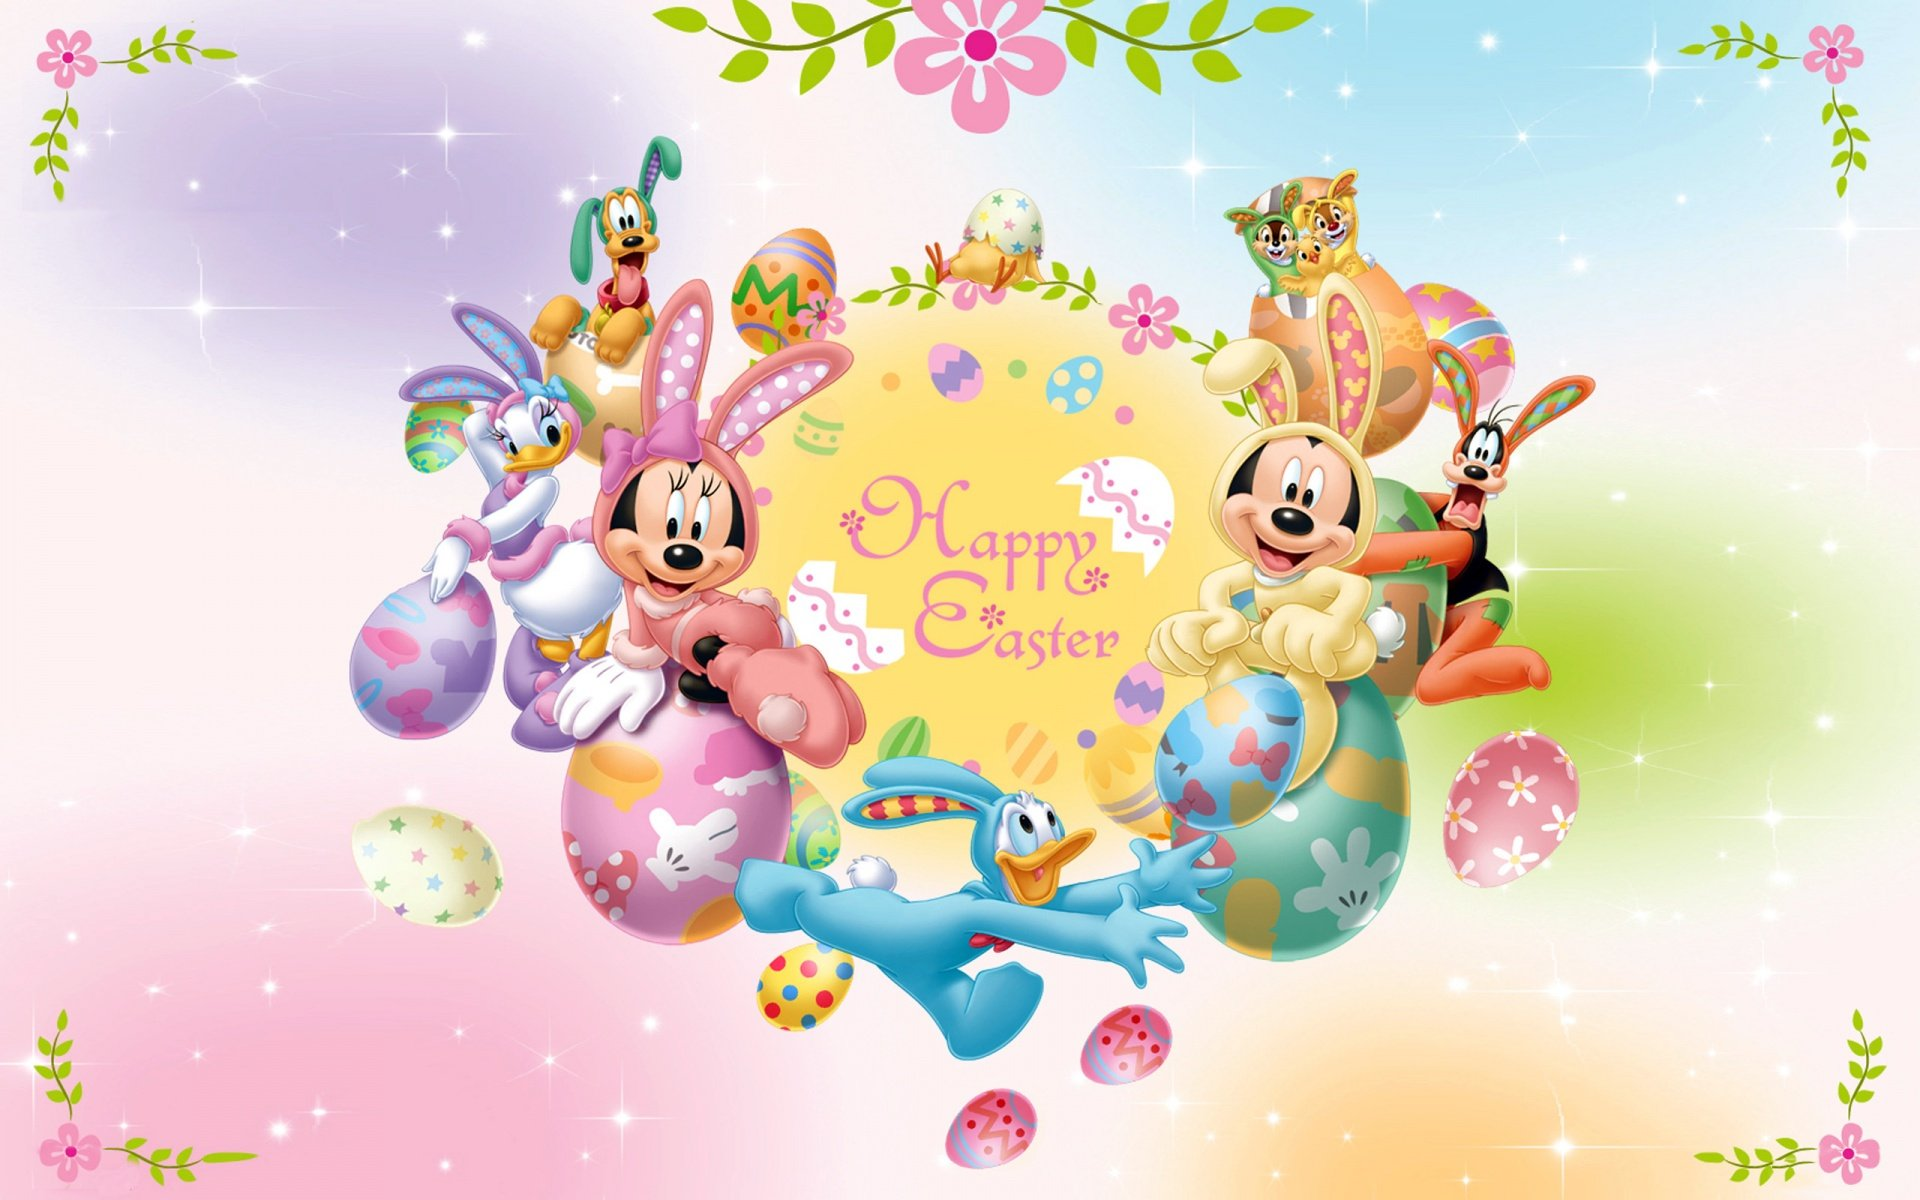 Happy Easter 2019 Images Quotes Wishes Messages SMS and 1920x1200